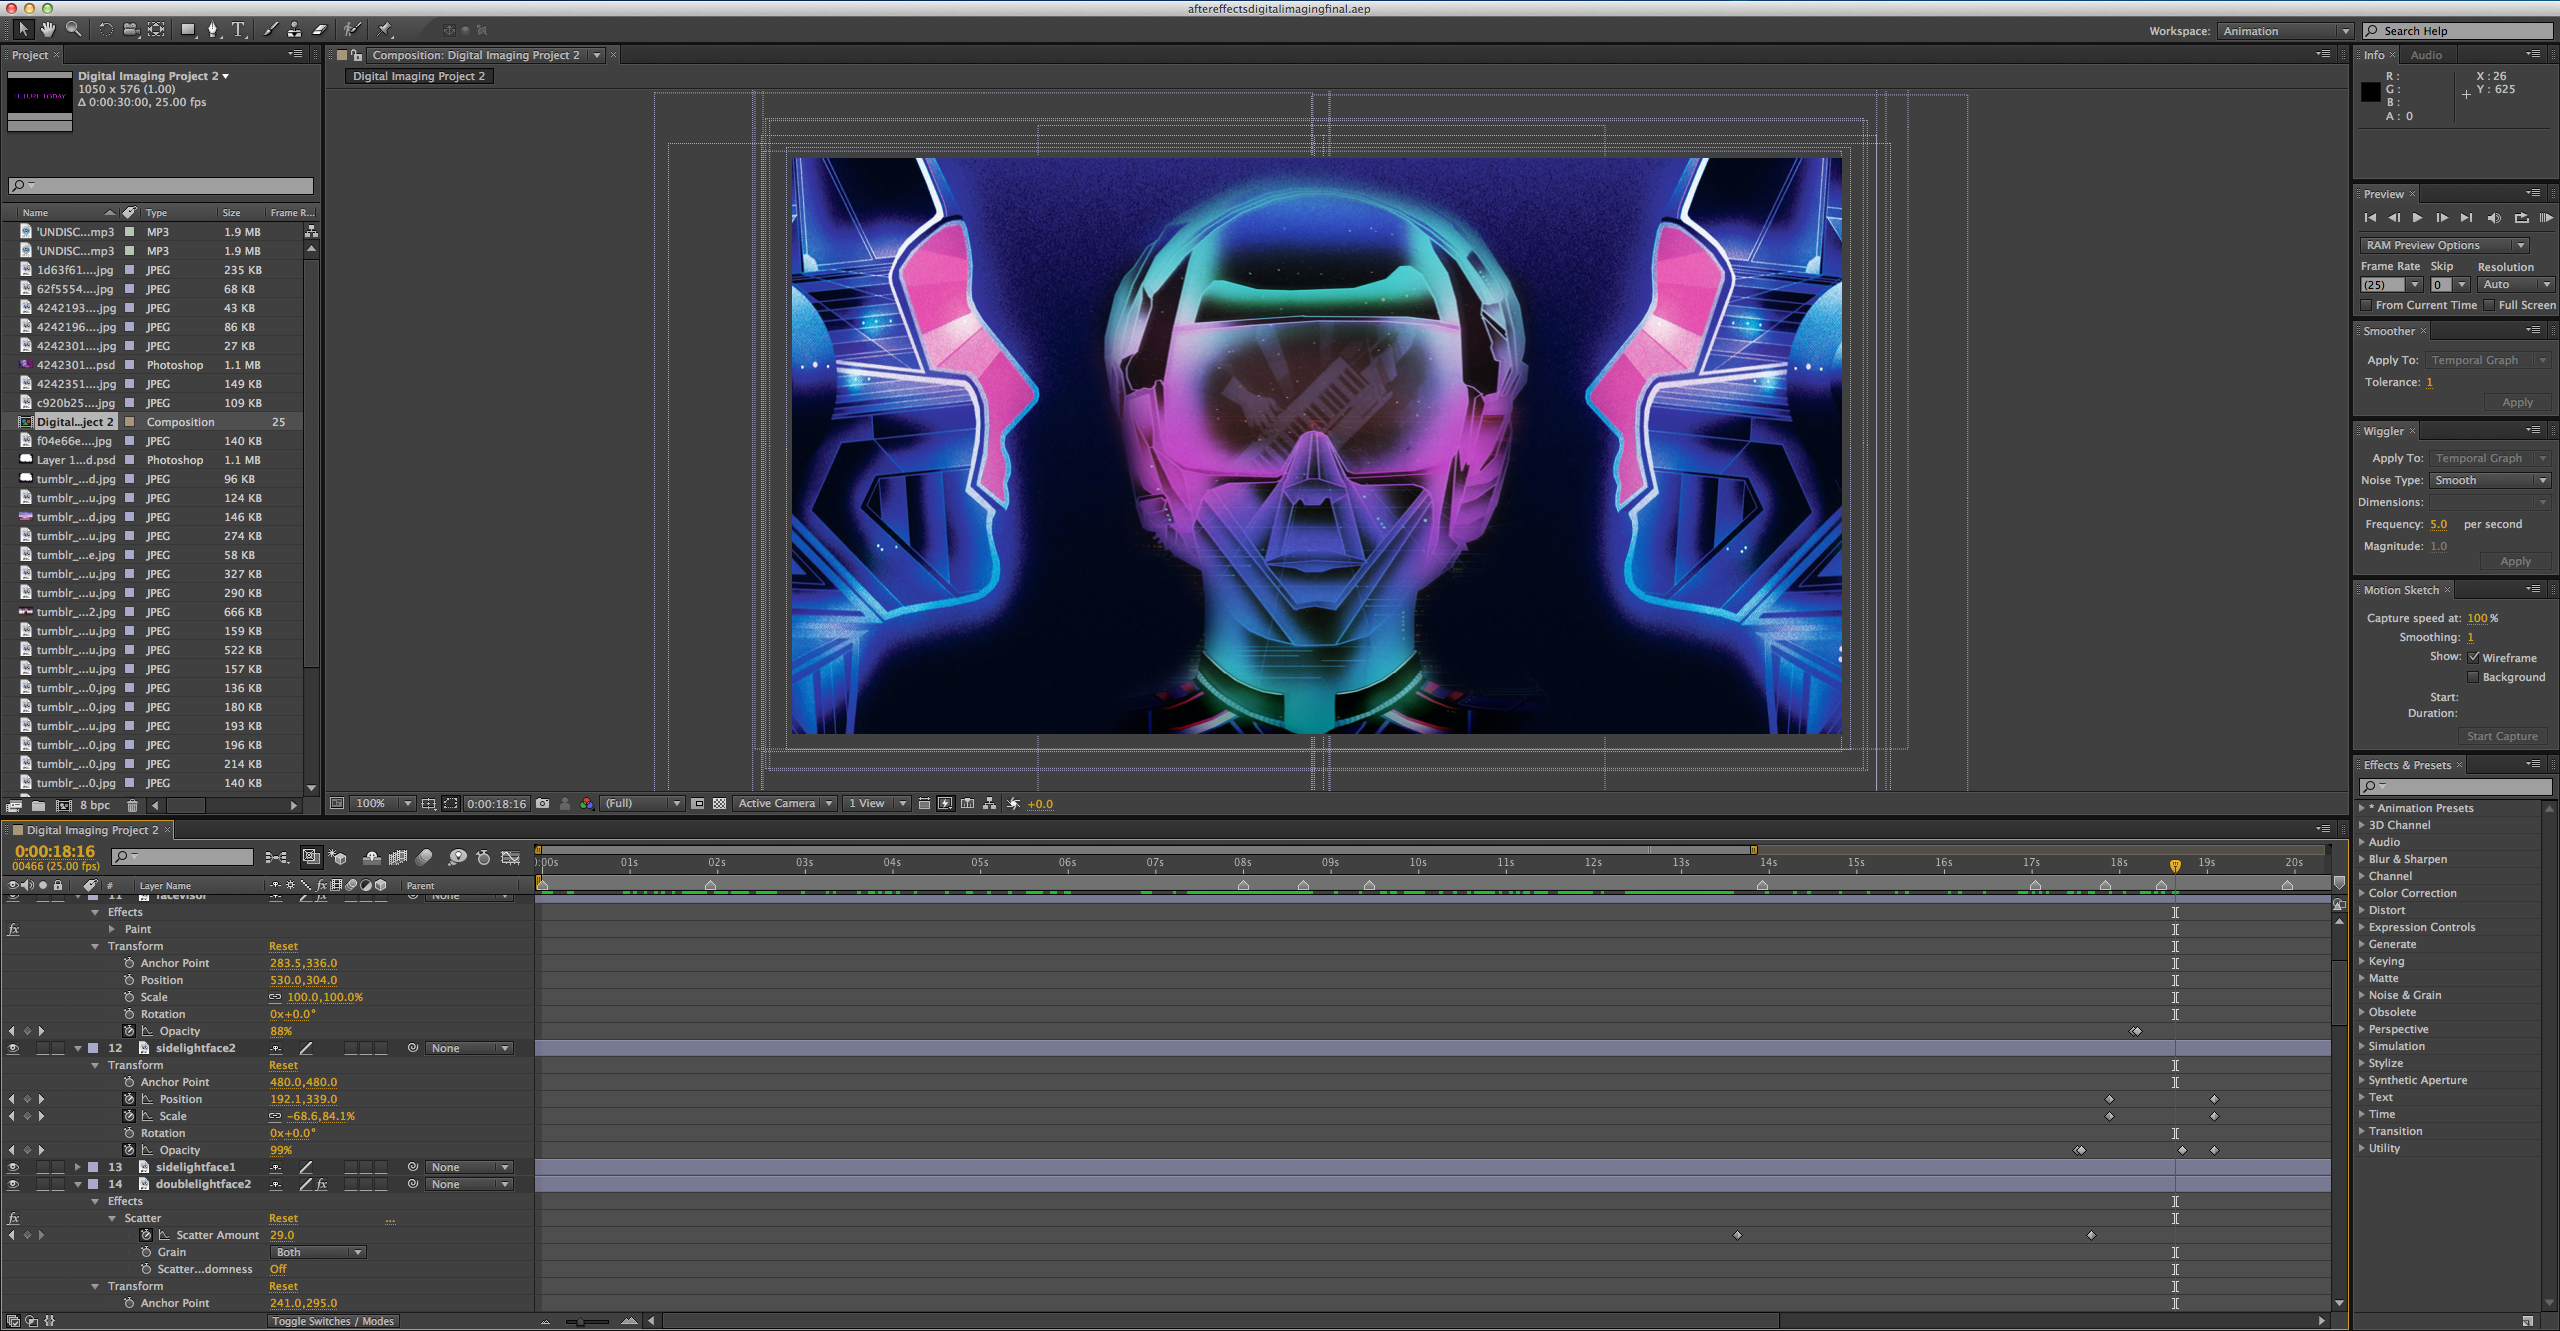 Progress in After Effects - Having different images